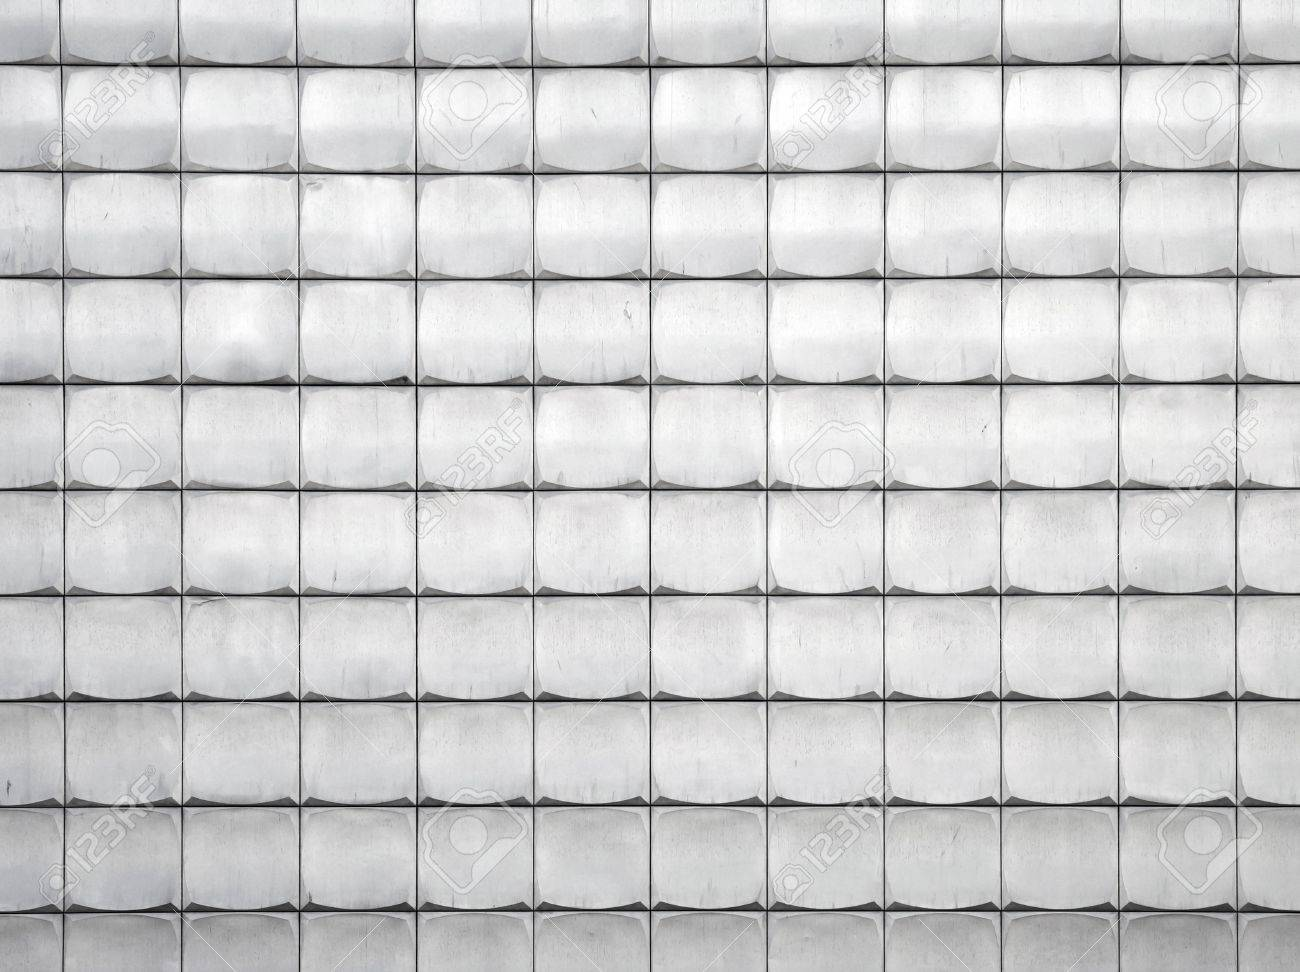 metal panel texture. Metal Tiled Relief Panels At The Wall Background Texture Stock Photo - 15742075 Panel